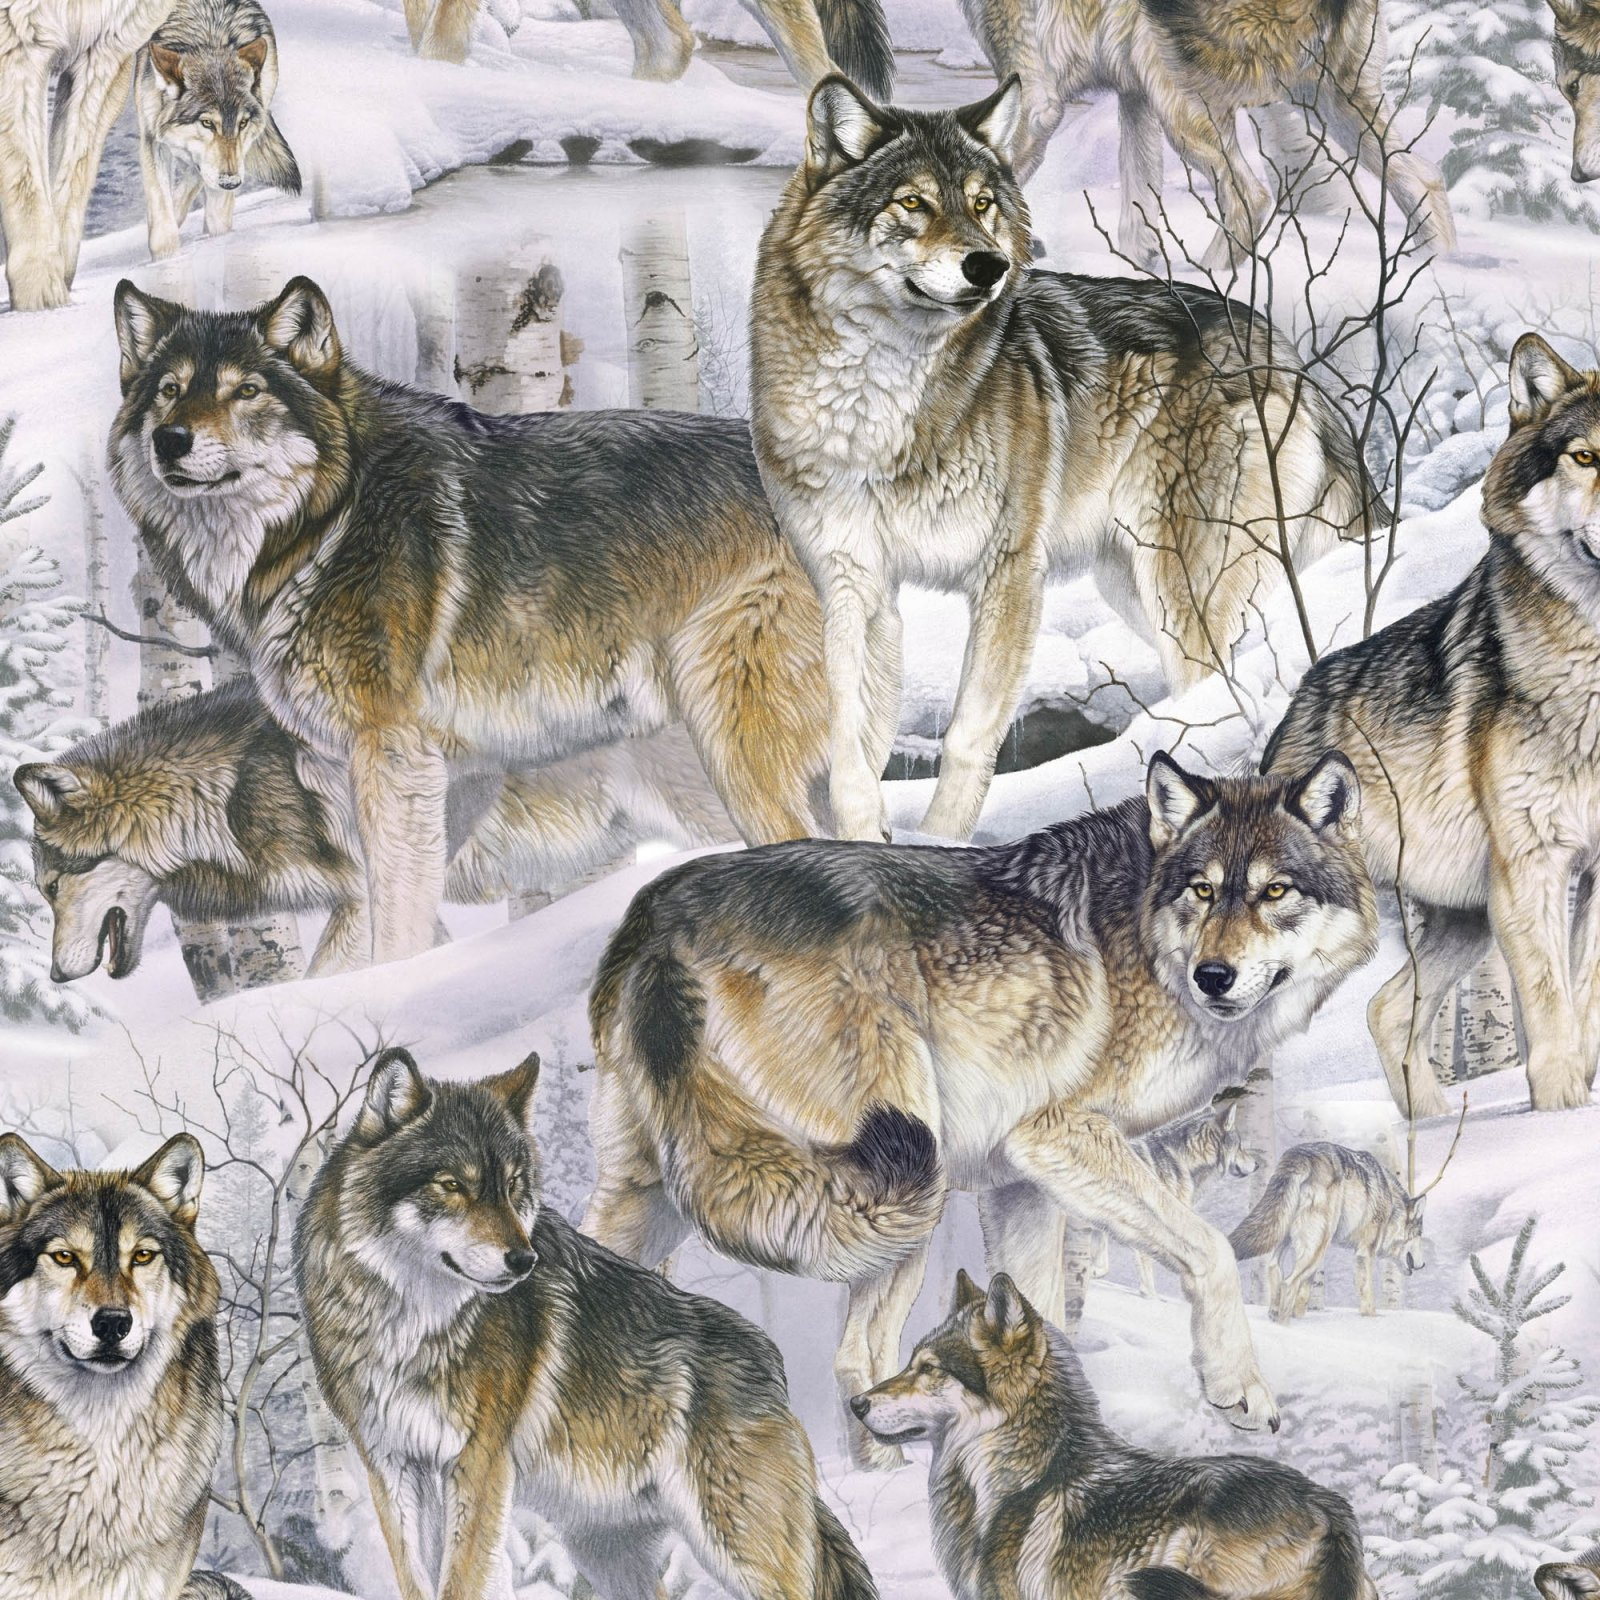 DT-Animal Love ML-2076-3C-1 Lt Gray/ Brown - Wolves in the Snow